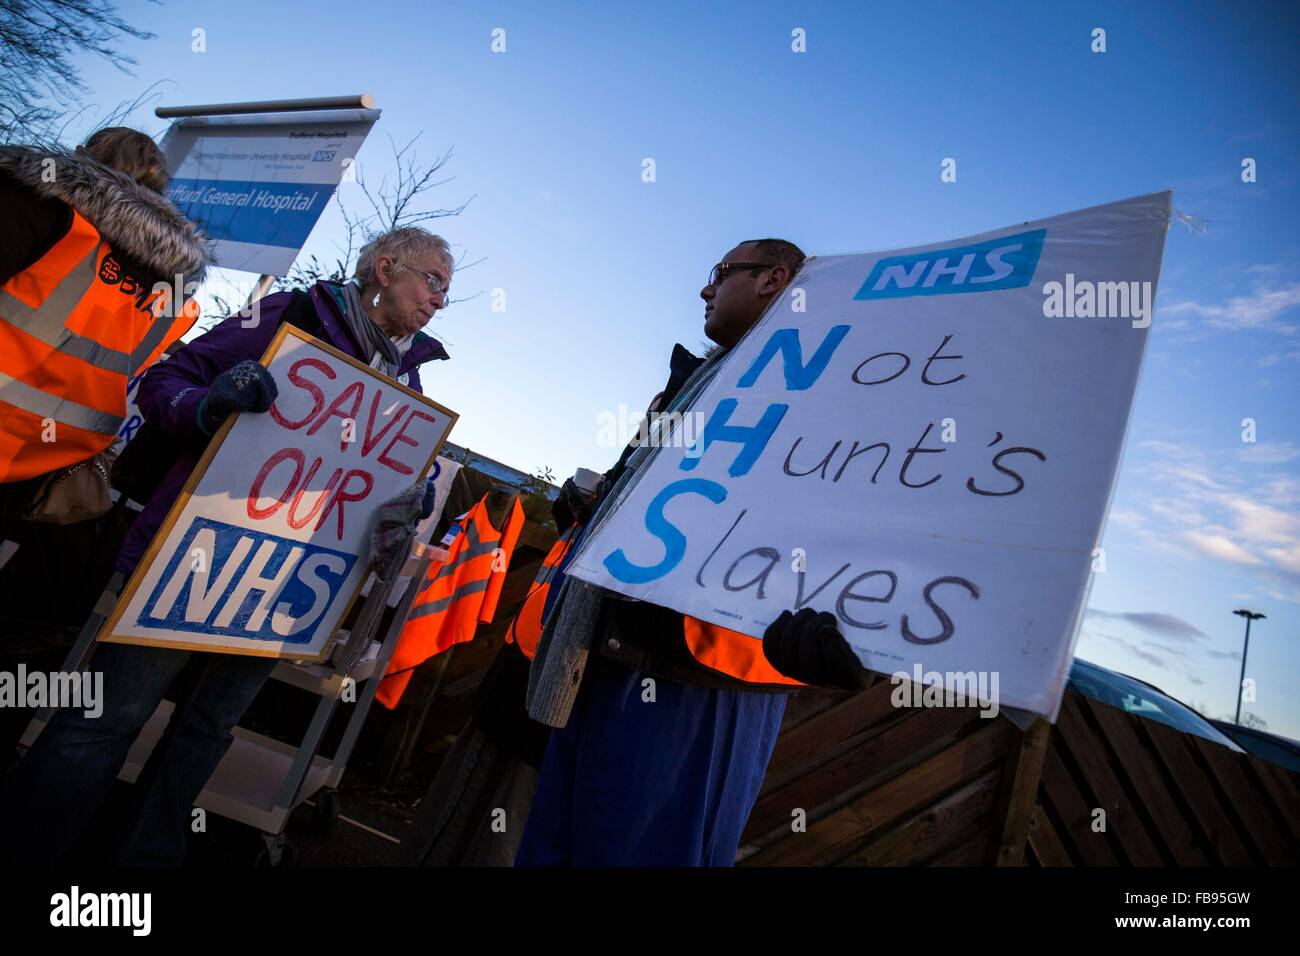 Junior doctors protest outside Trafford General Hospital , Manchester today (Tuesday 12/1/16). - Stock Image